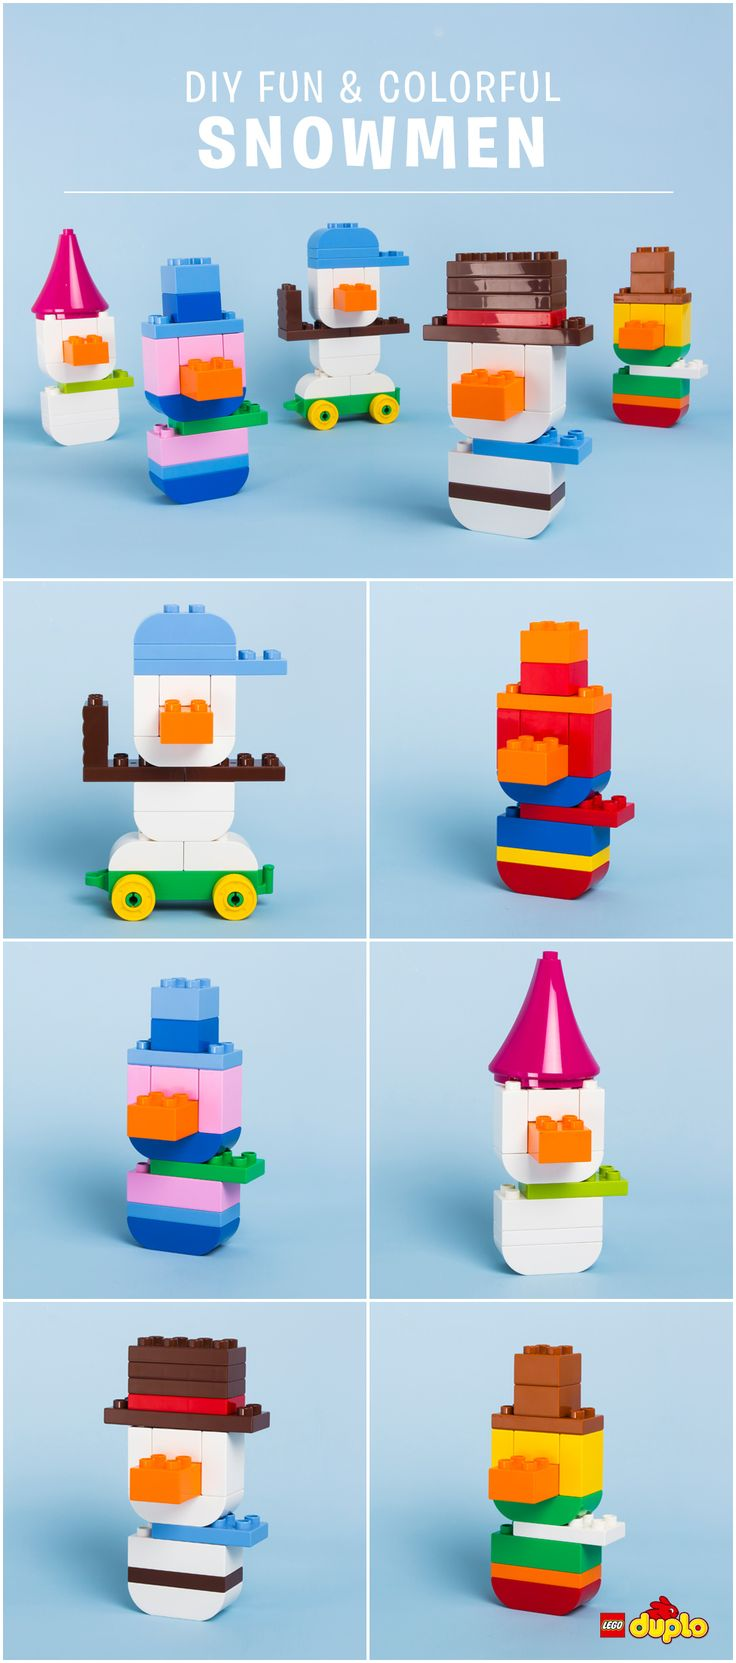 To every one of our favorite LEGO DUPLO fans, big and small: Thank YOU for making 2015 even more creative and extraordinary than we ever imagined! Wishing you happy building – and Happy Holidays!   Find out here how to build these cute snowmen: http://www.lego.com/en-us/family/articles/colorful-snowmen-05d005c51792405281d7255259d0e97a